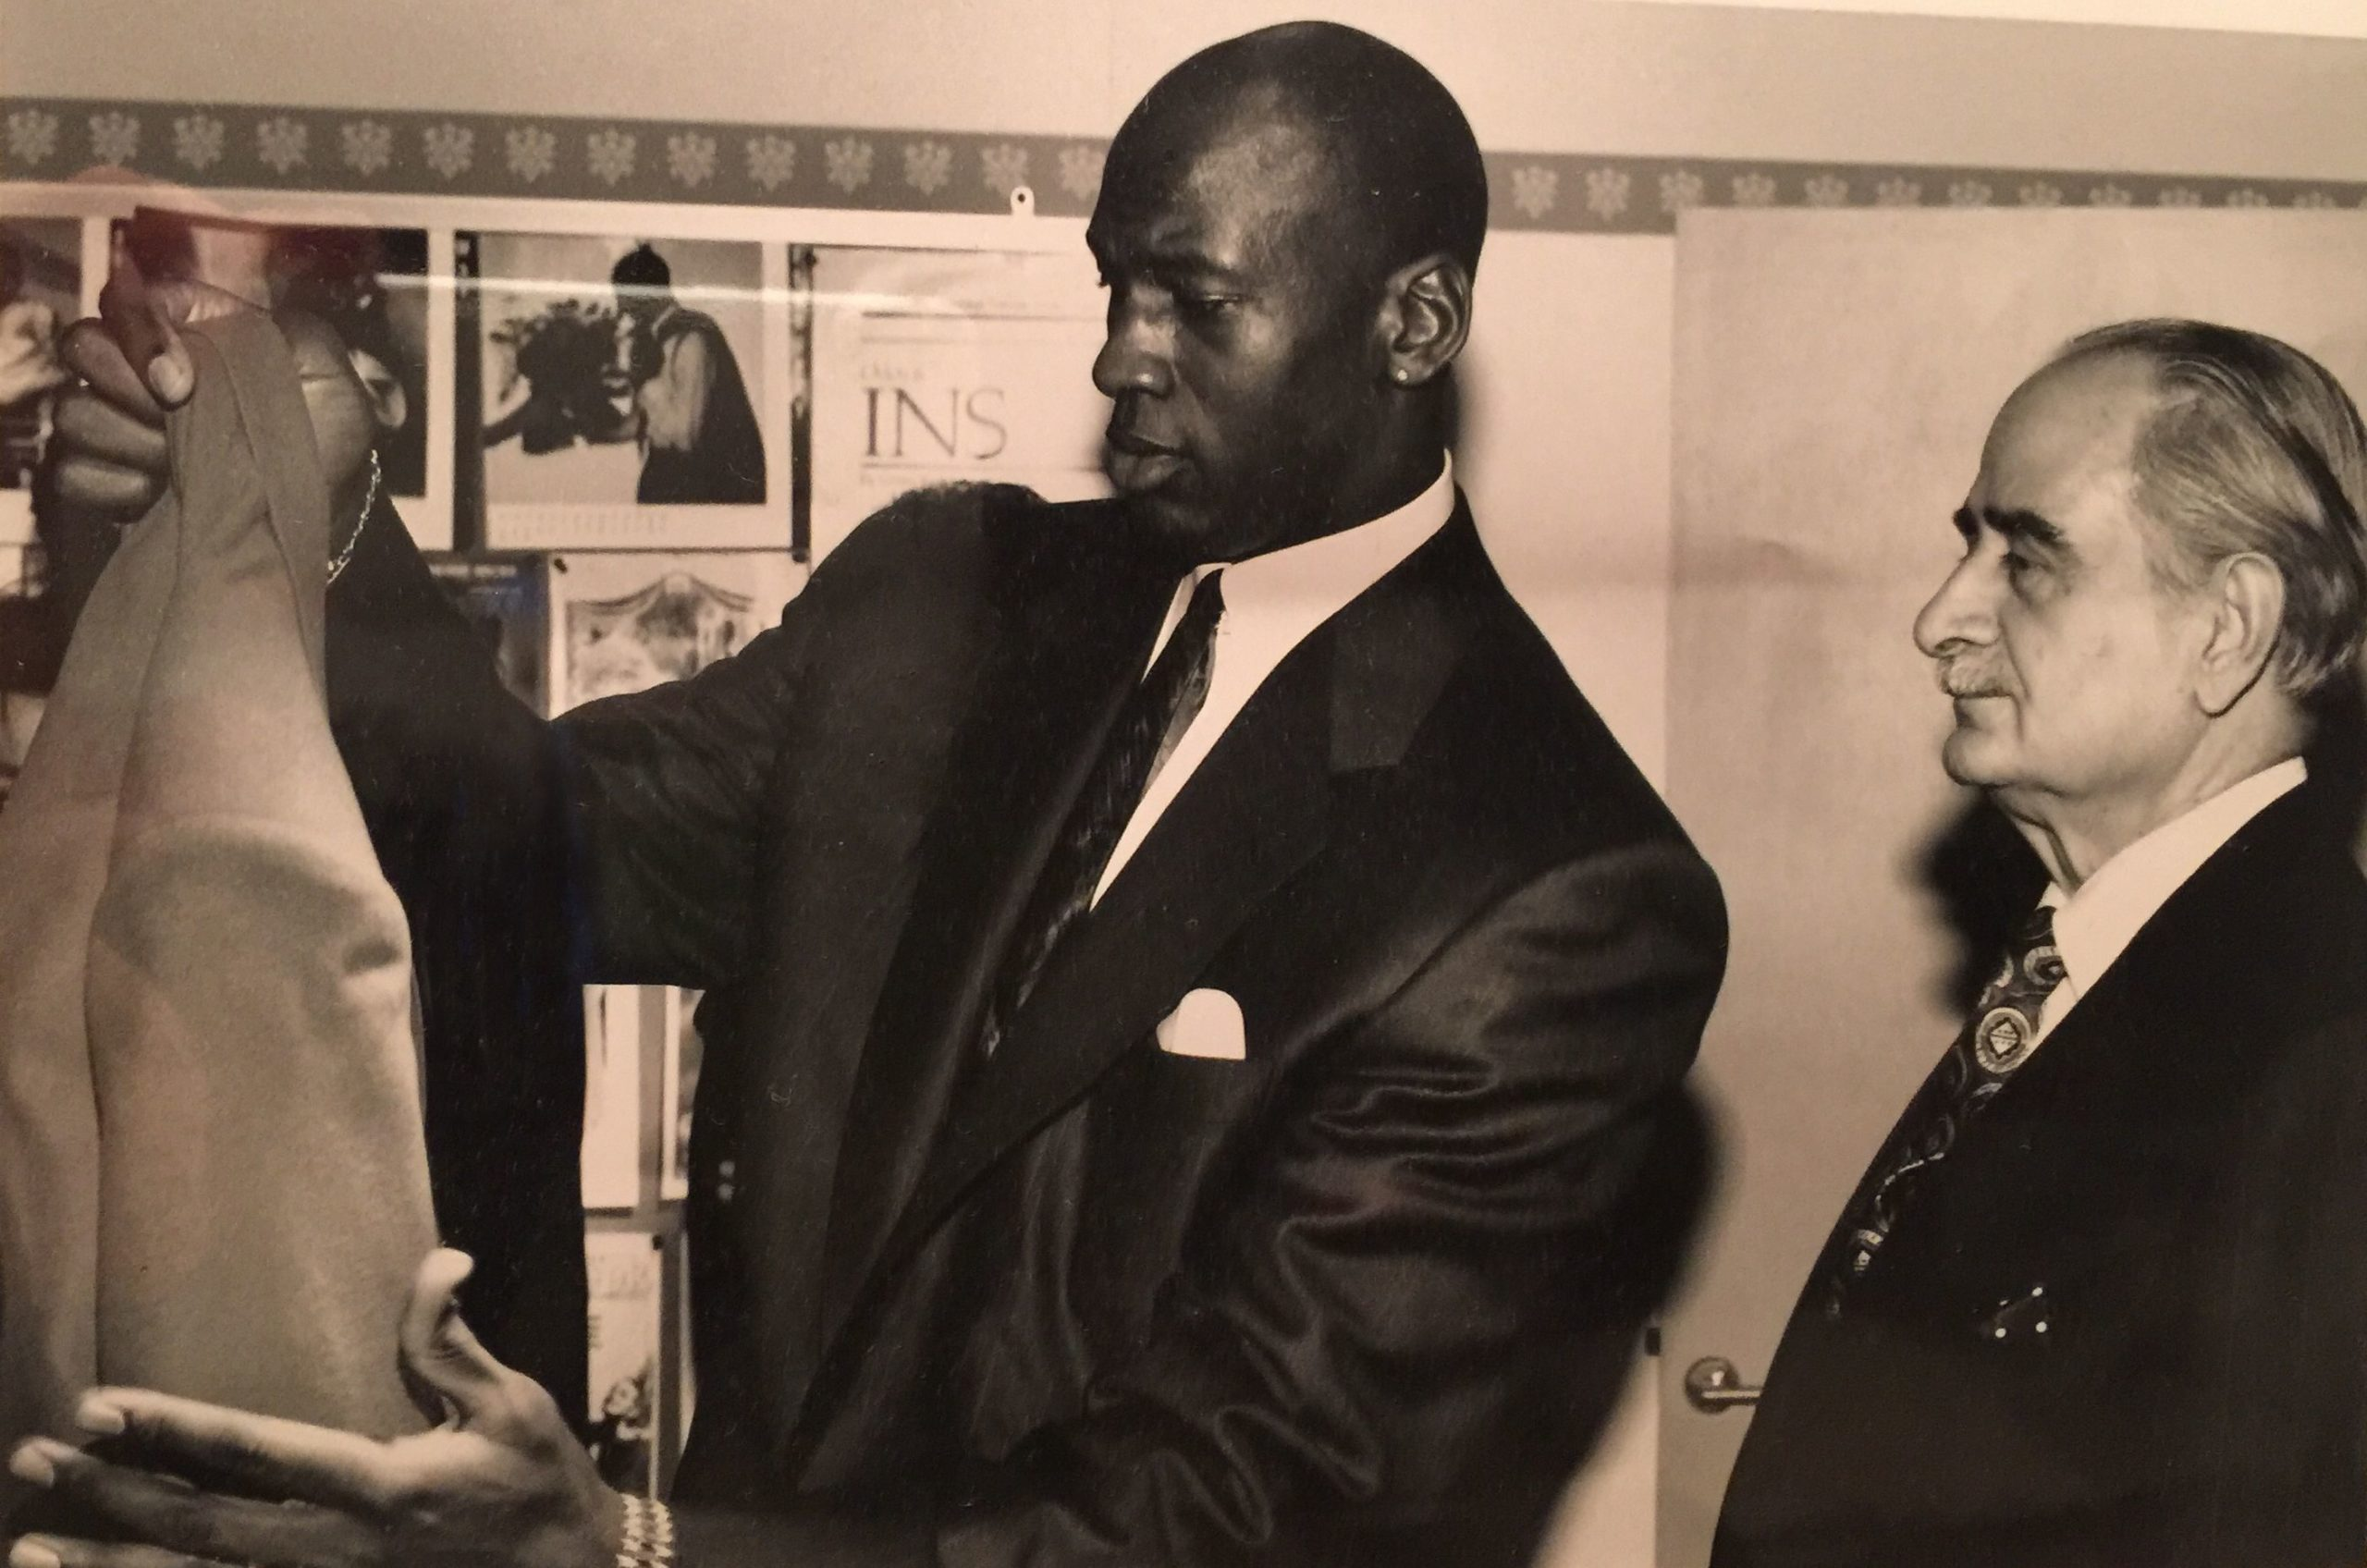 Michael Jordan picking out a suit in his younger years